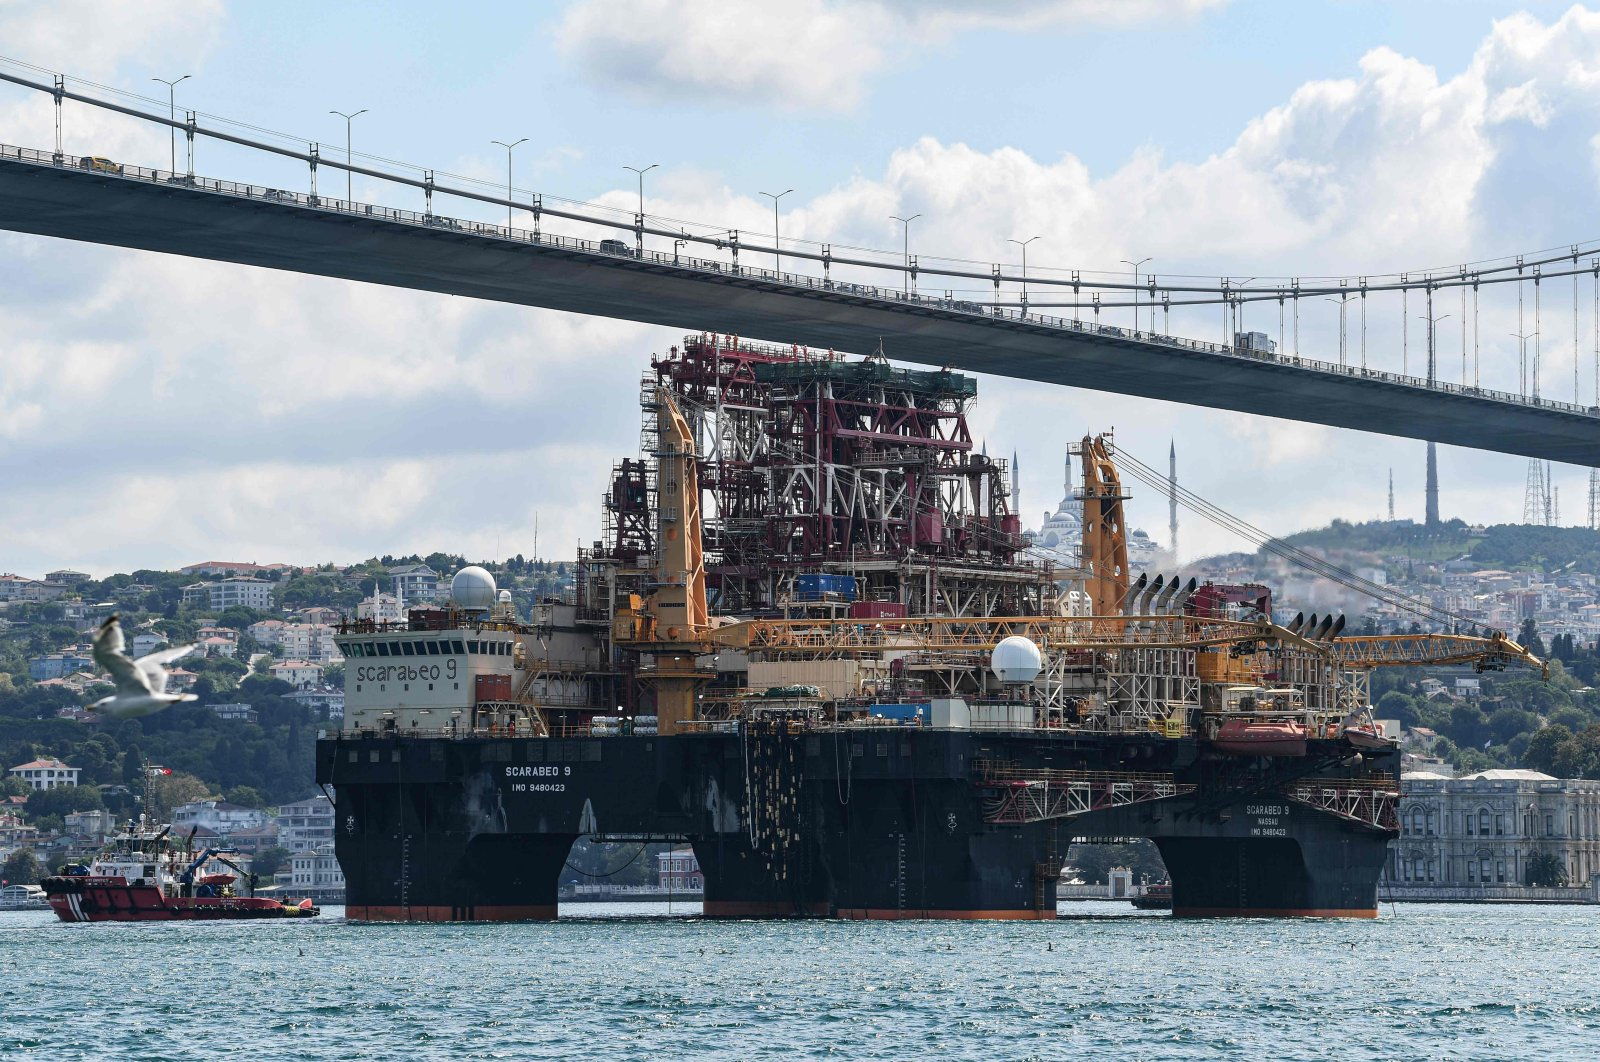 Scarabeo 9, a 115-meter-long and 78-meter-high Frigstad D90-type semi-submersible drilling rig, passes under the July 15th Martyrs Bridge on the Bosphorus Strait en route to the Black Sea, Istanbul, Turkey, Aug. 29, 2019. (AFP Photo)